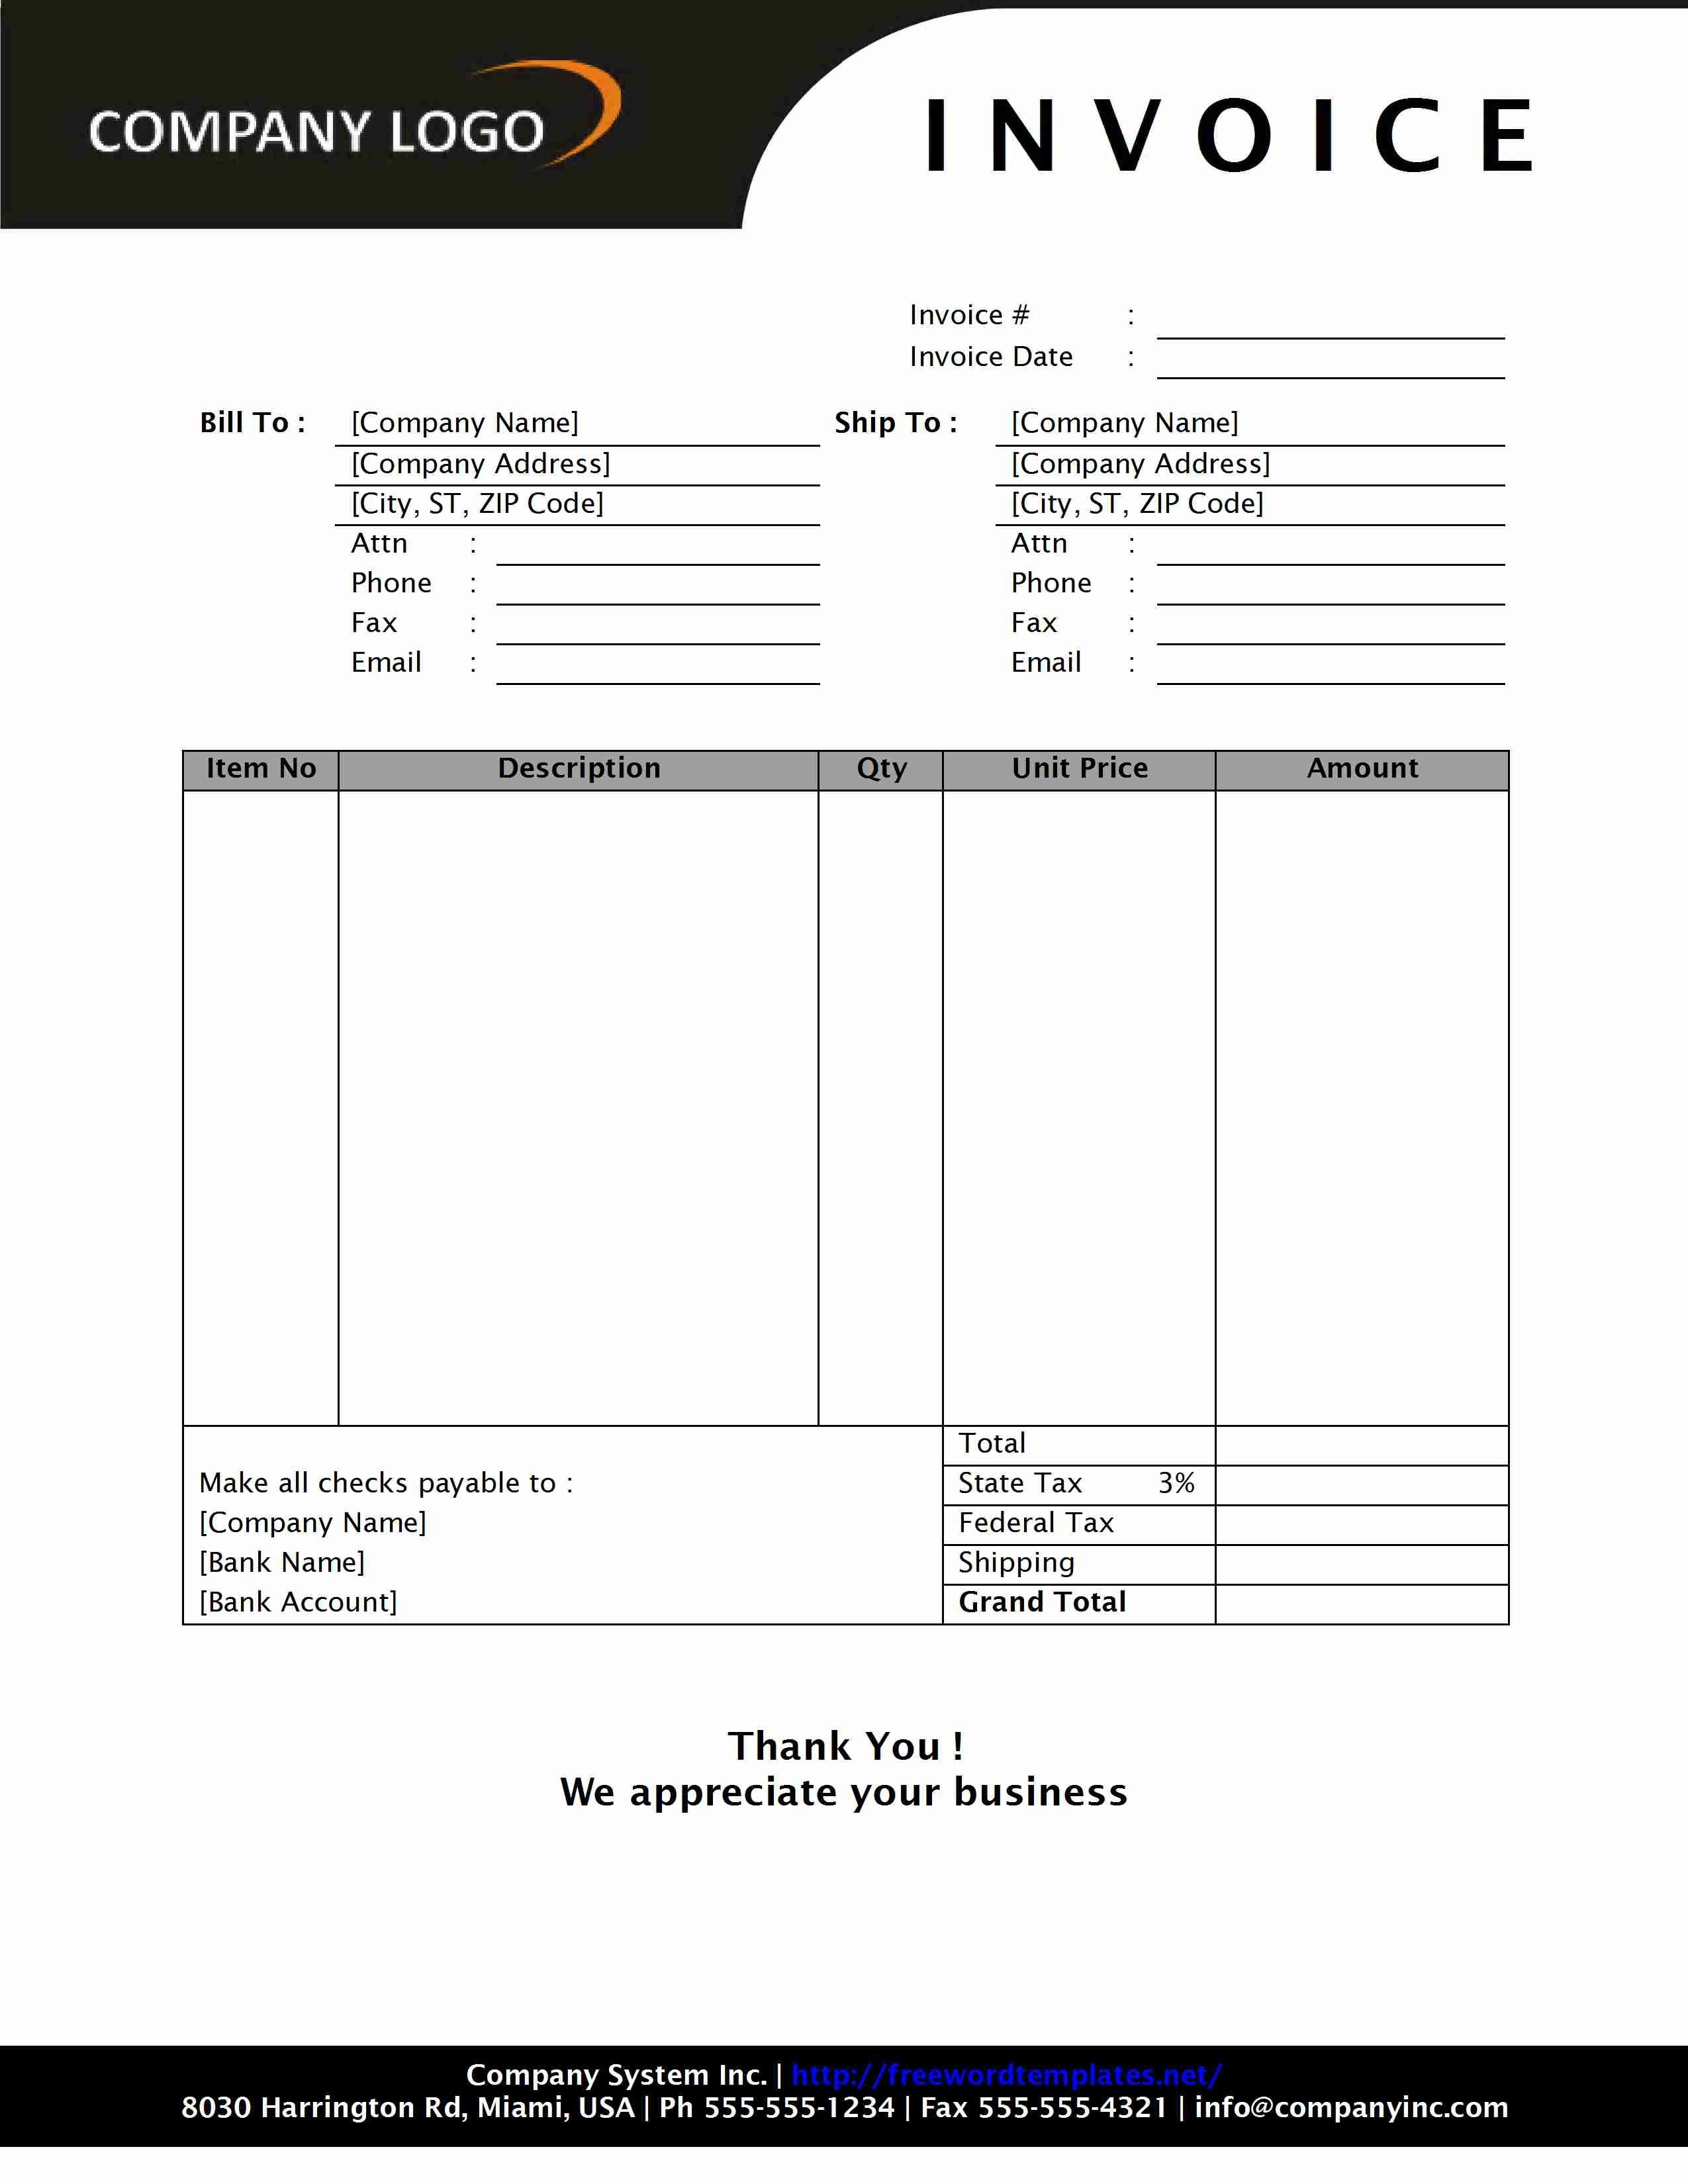 Cash Invoice Template Invoice Example Ivoice Model Pinterest